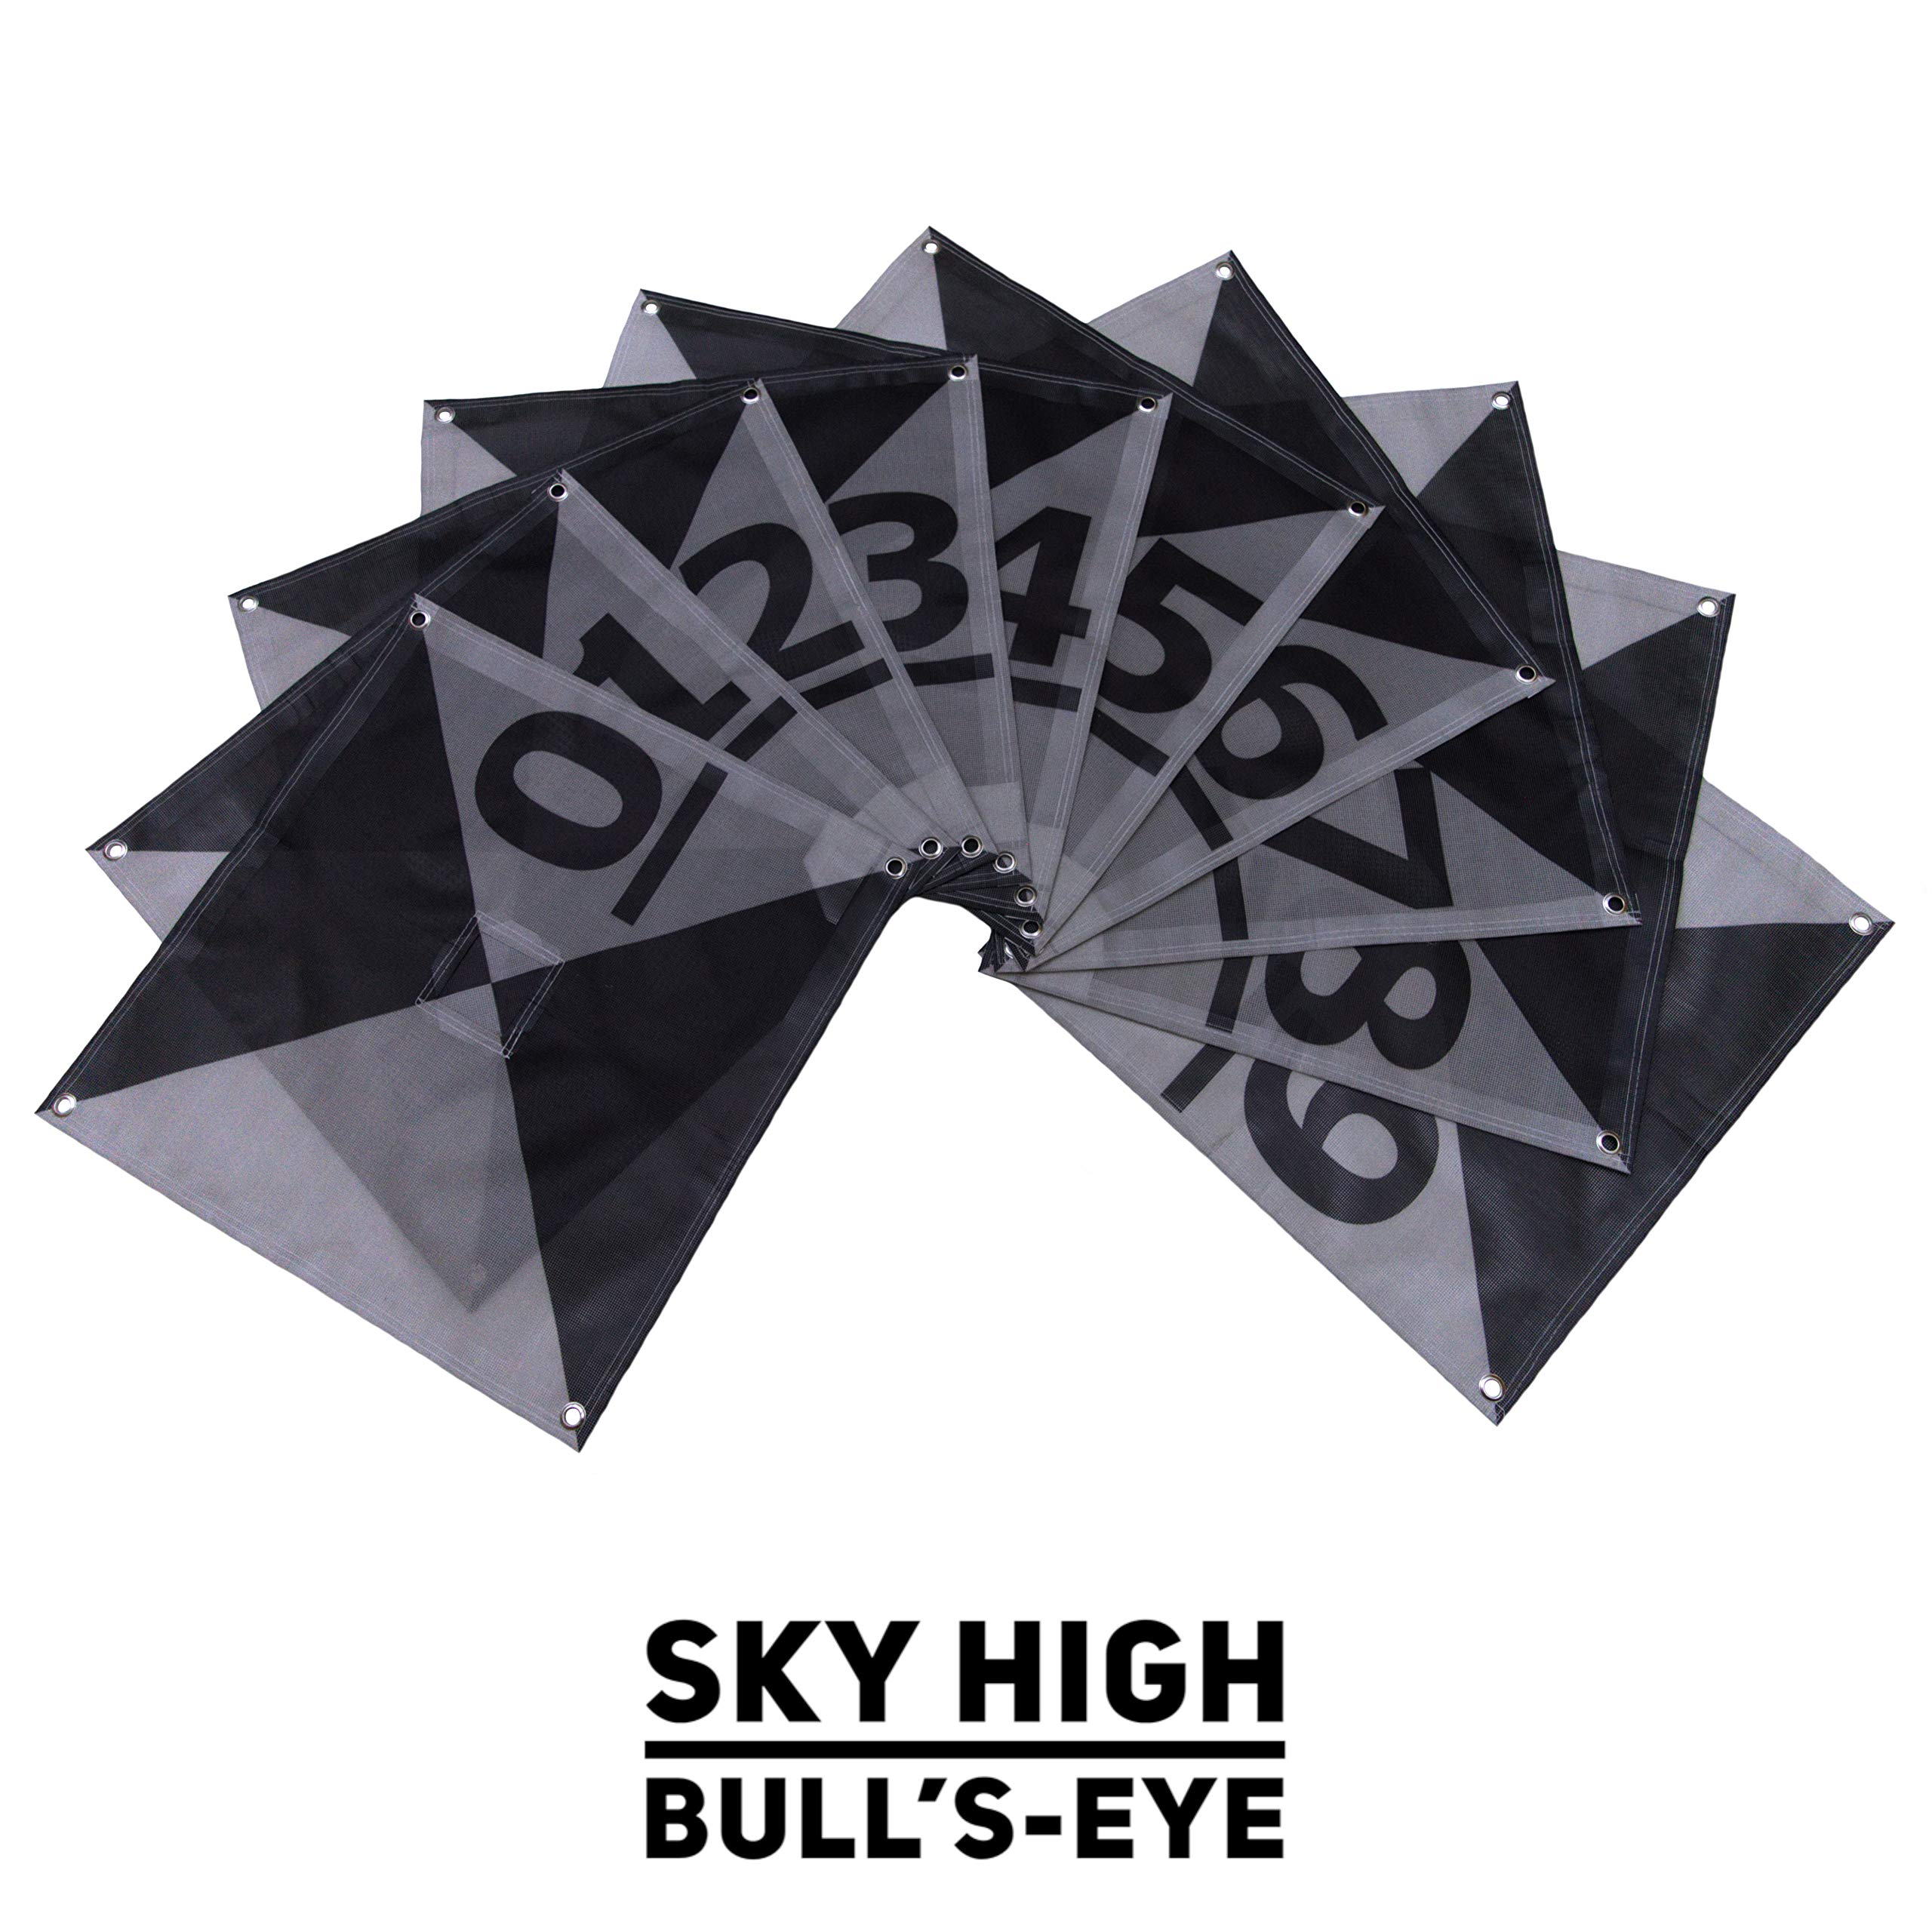 UAV Ground Control Points (GCPs)/Aerial Targets for Aerial Mapping & Surveying (10 Pack) with Center Passthrough Numbered 0-9 | Harlequin Iron Cross Edition (Black & Grey)